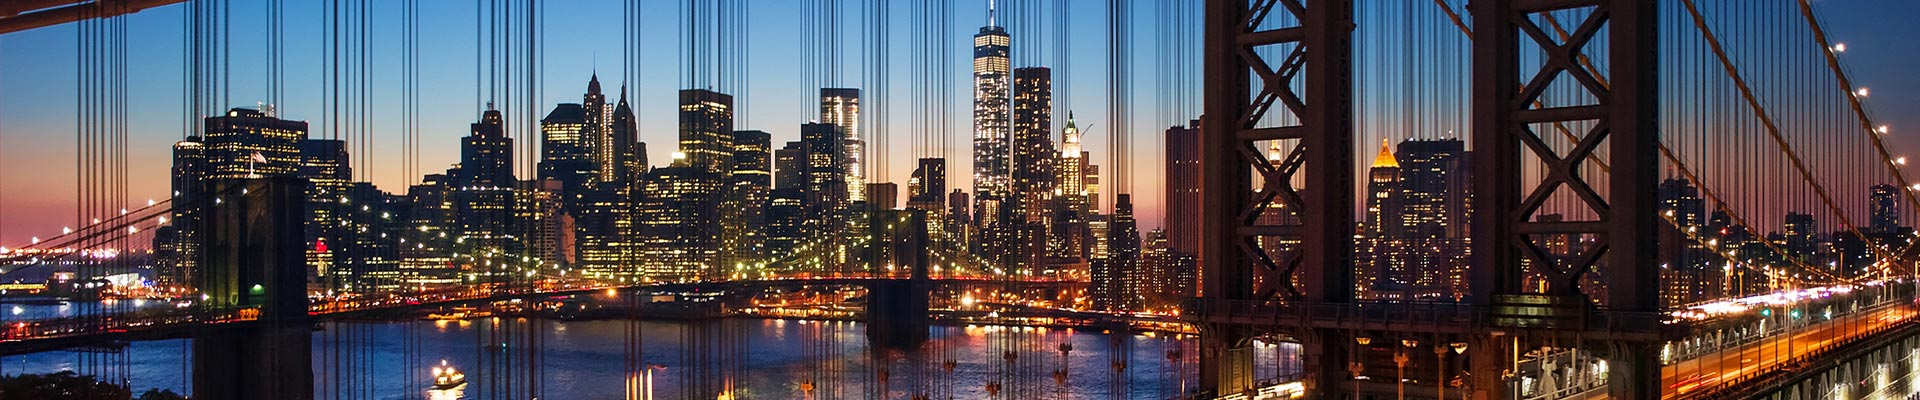 10 cose da fare a New York a Capodanno